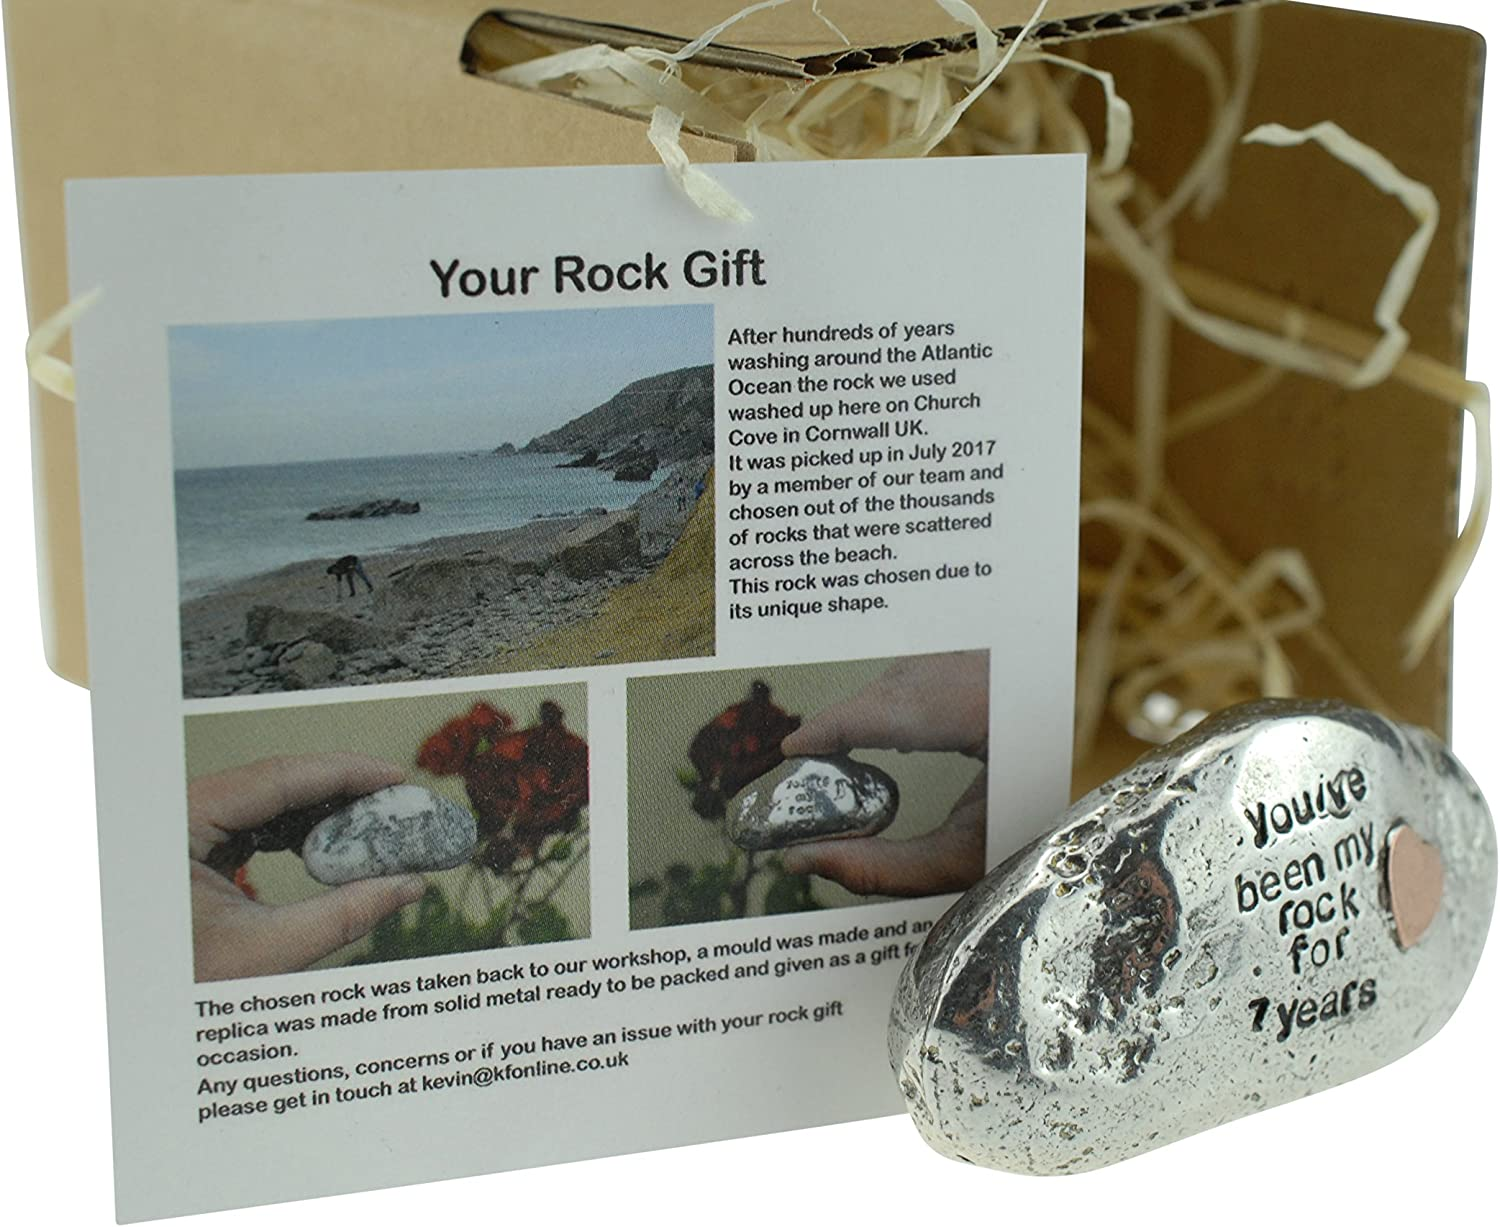 Heavy Rock Gift Solid 7th Anniversary Metal Rock With Copper Heart Inset Pirantin Youve Been My Rock For 7 Years